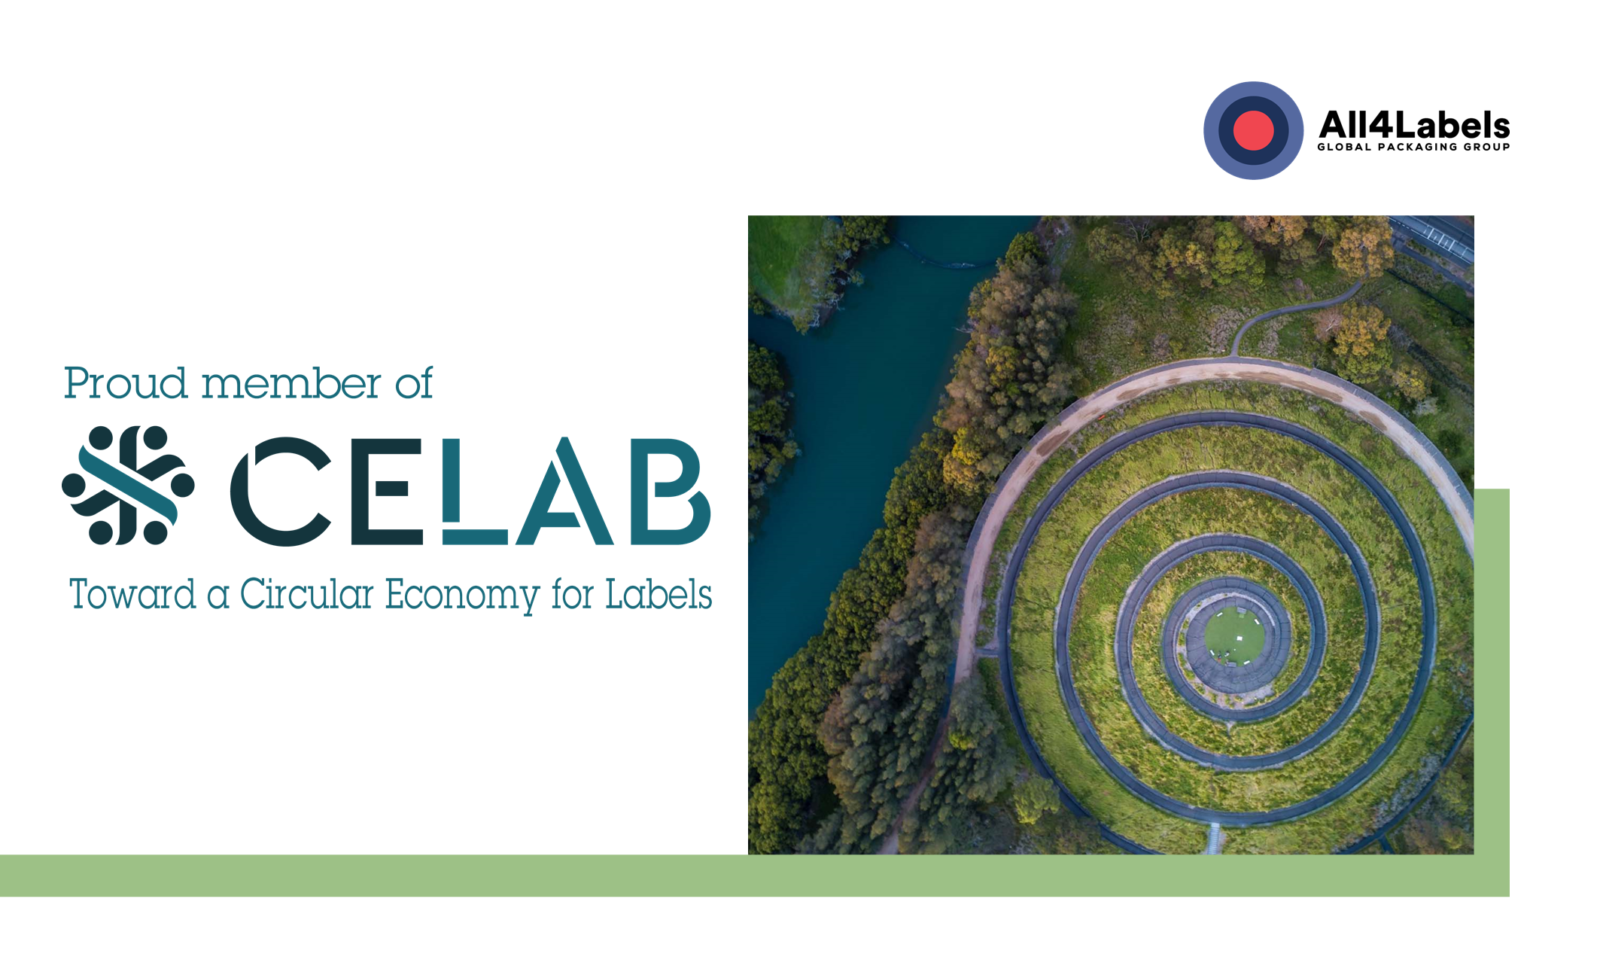 All4Labels joins CELAB consortium as official member to promote global recycling in the label industry